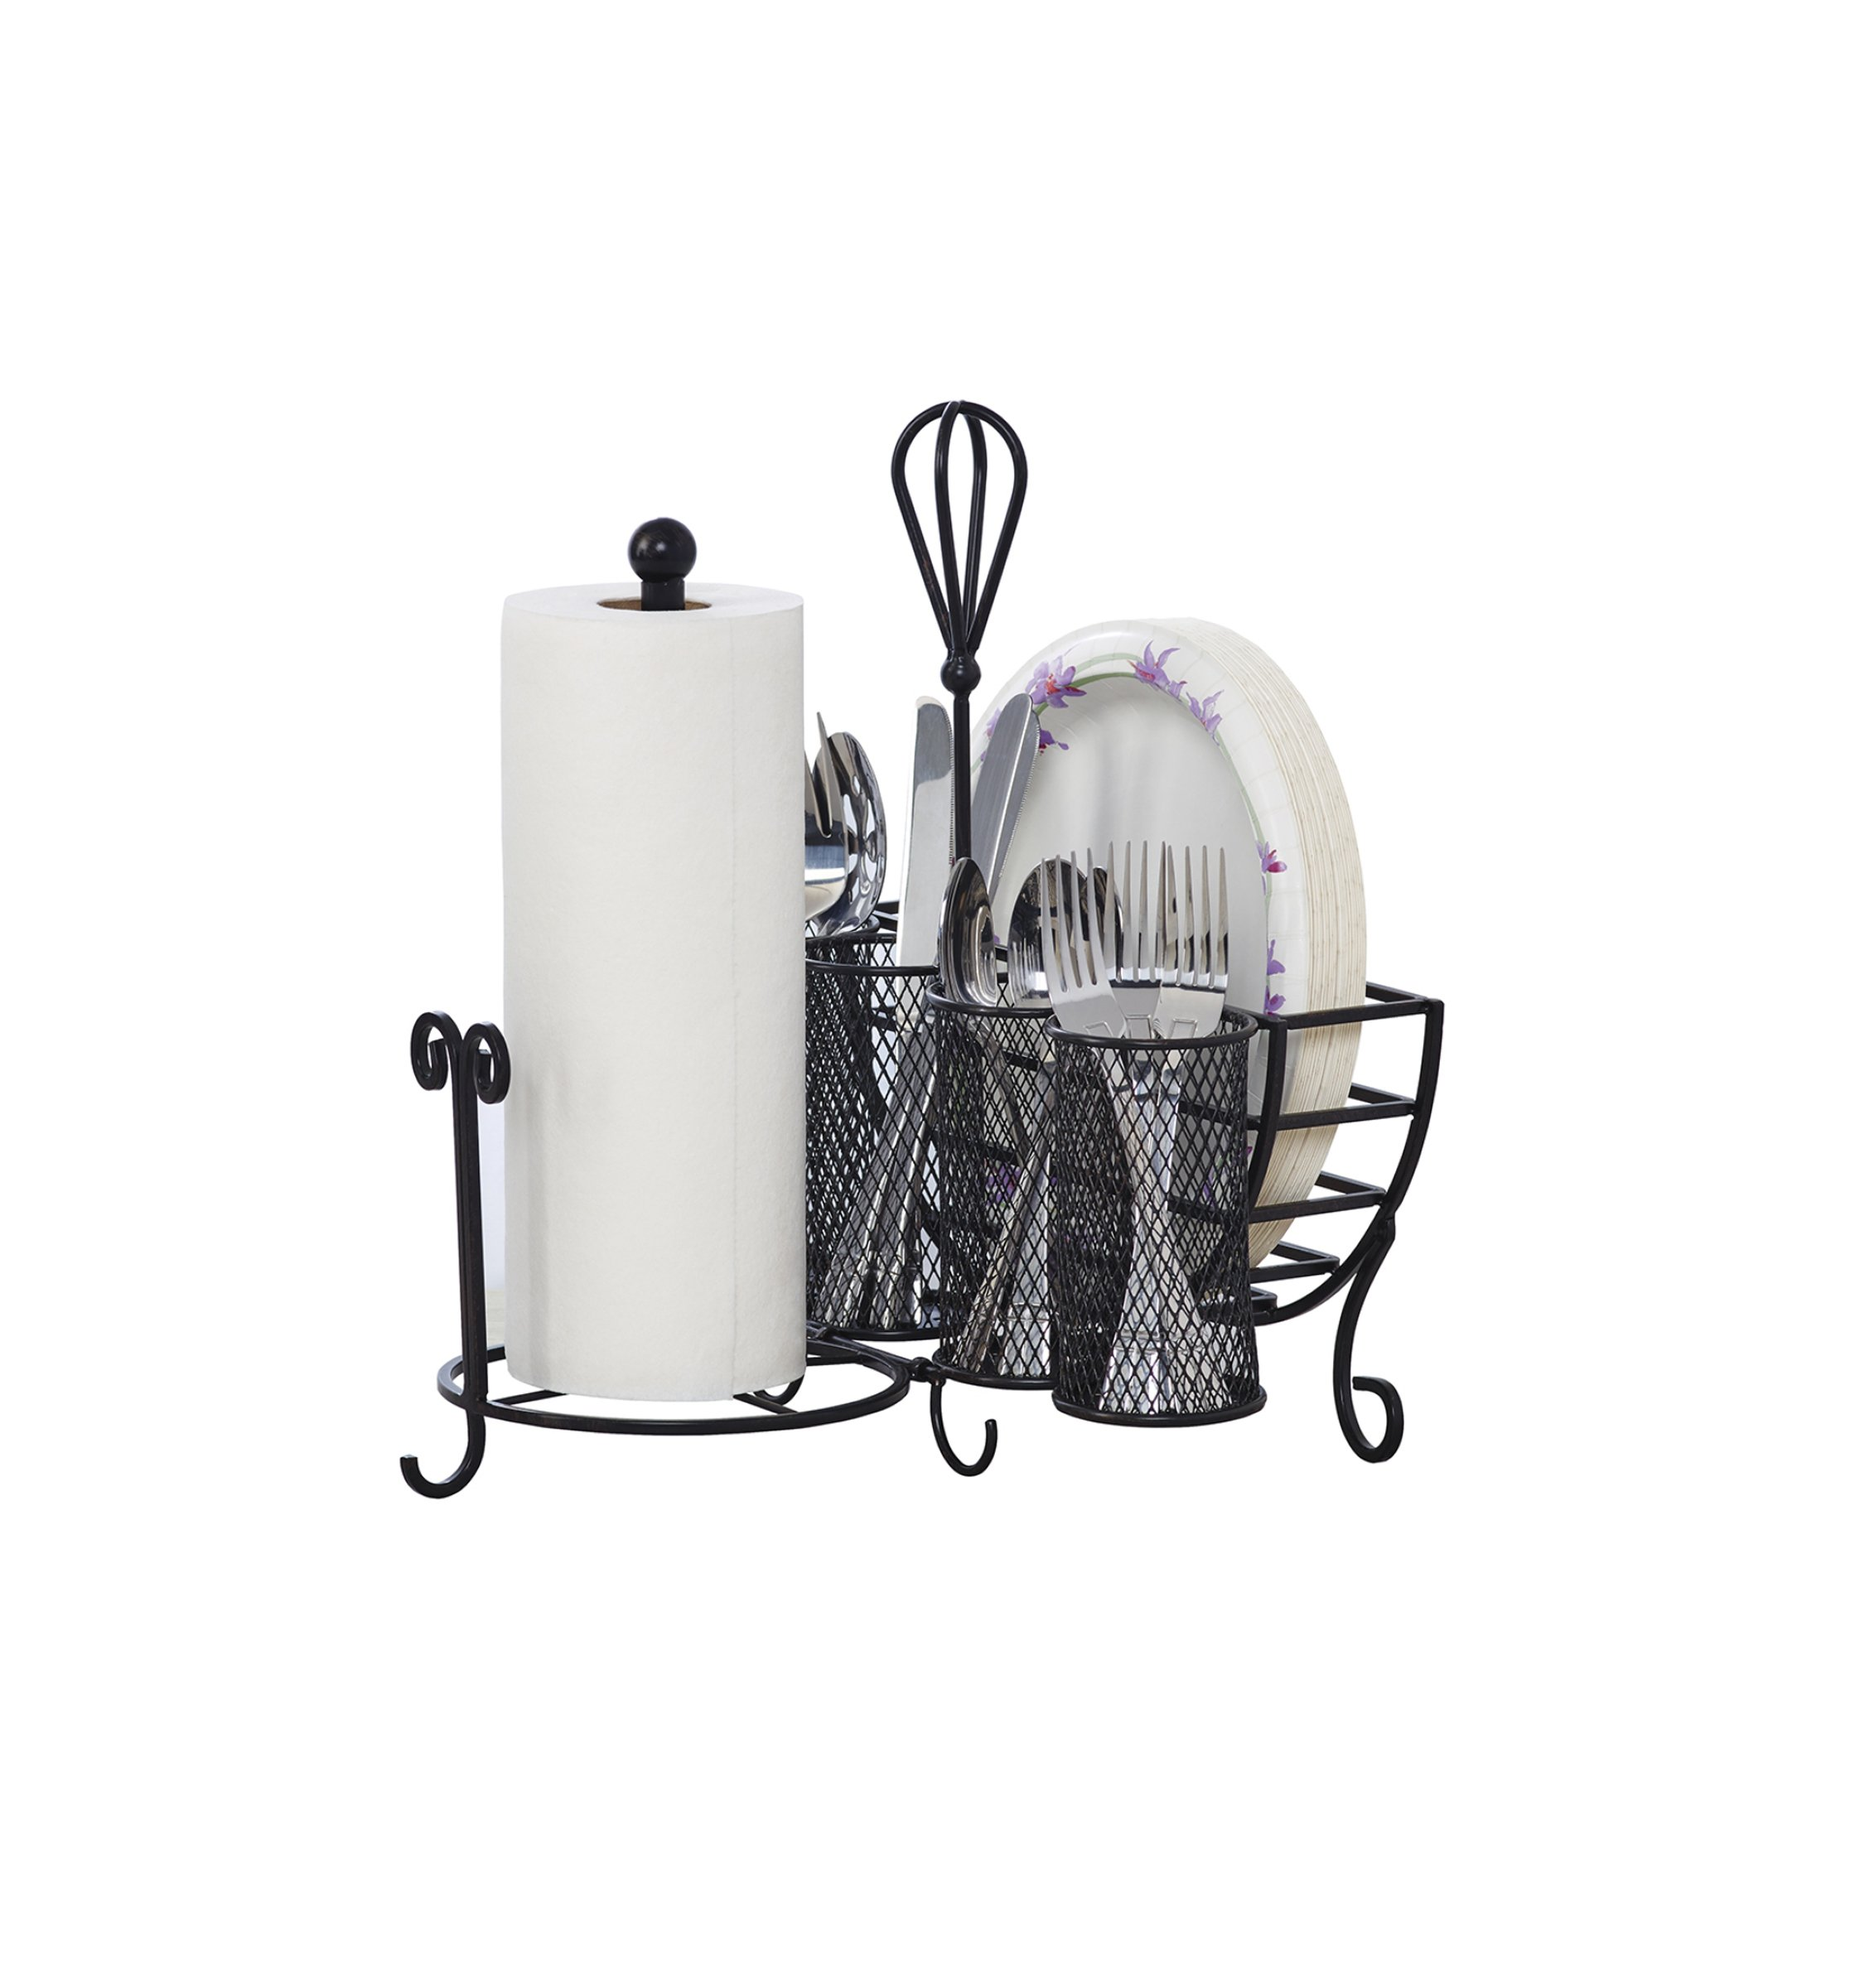 Gourmet Basics by Mikasa 5176813 Avilla Picnic Plate Napkin and Flatware Storage Caddy with Paper Towel Holder, Antique Black by Gourmet Basics by Mikasa